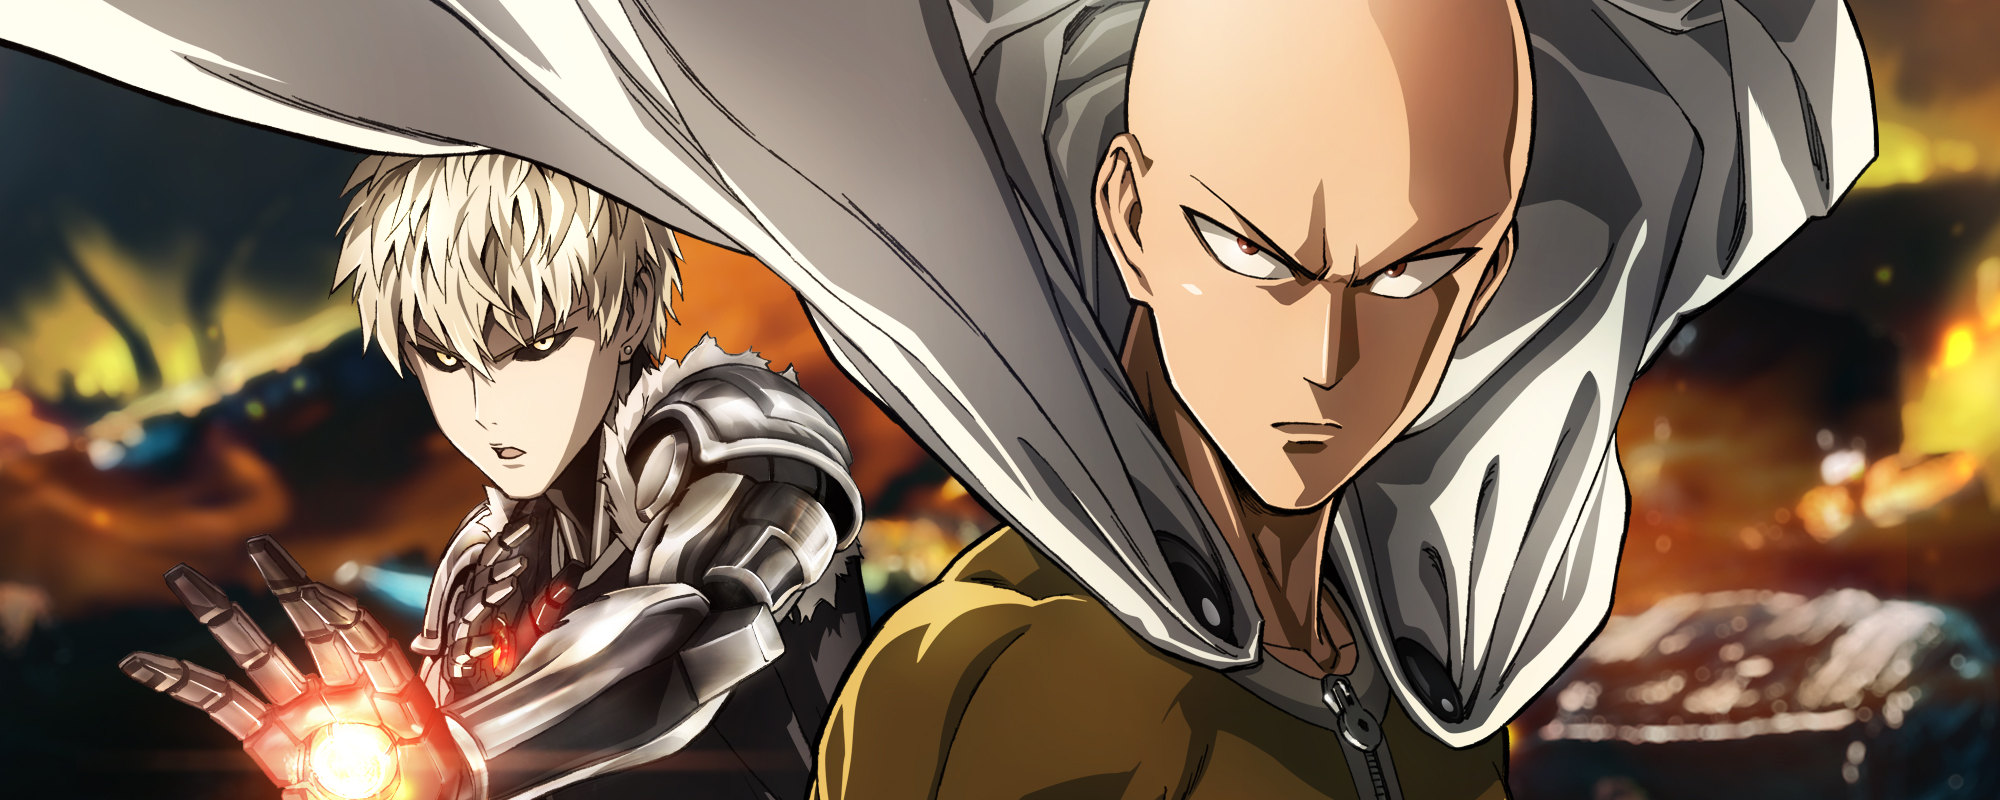 One Punch Man Season 3 Release Date: OVA's to Cover the ...